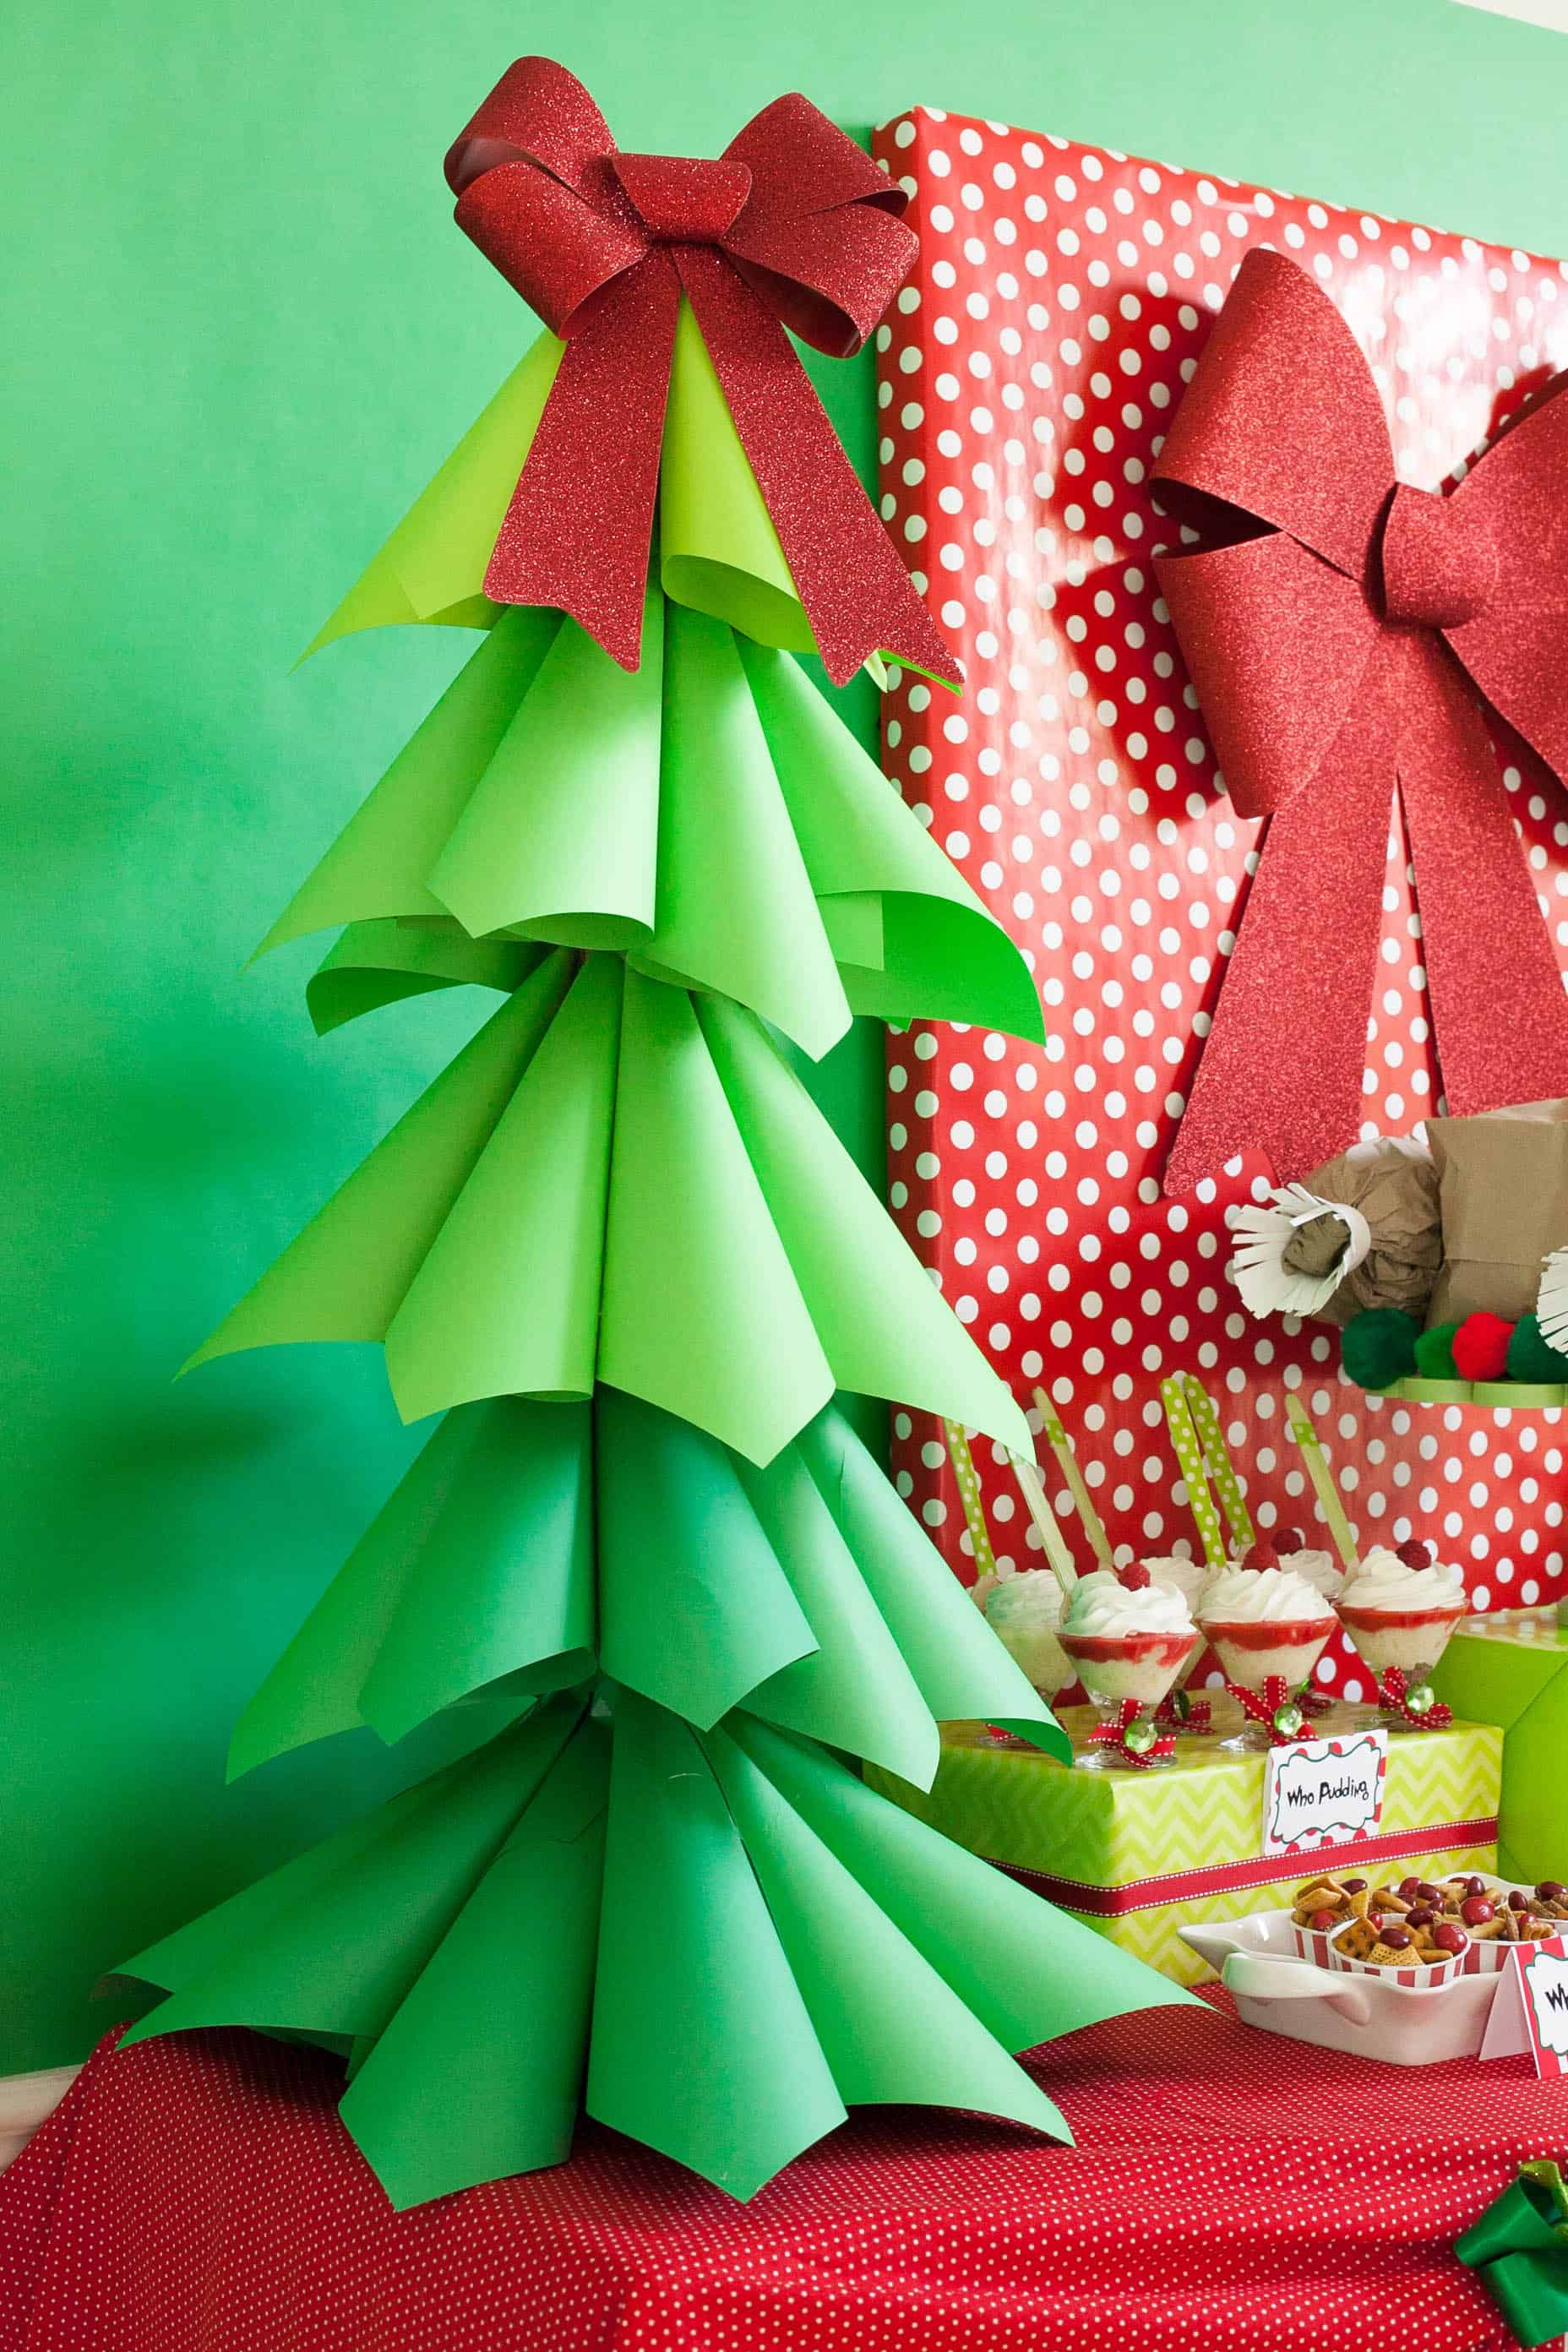 Good Big Christmas Party Ideas Part - 10: Curled Paper Christmas Tree